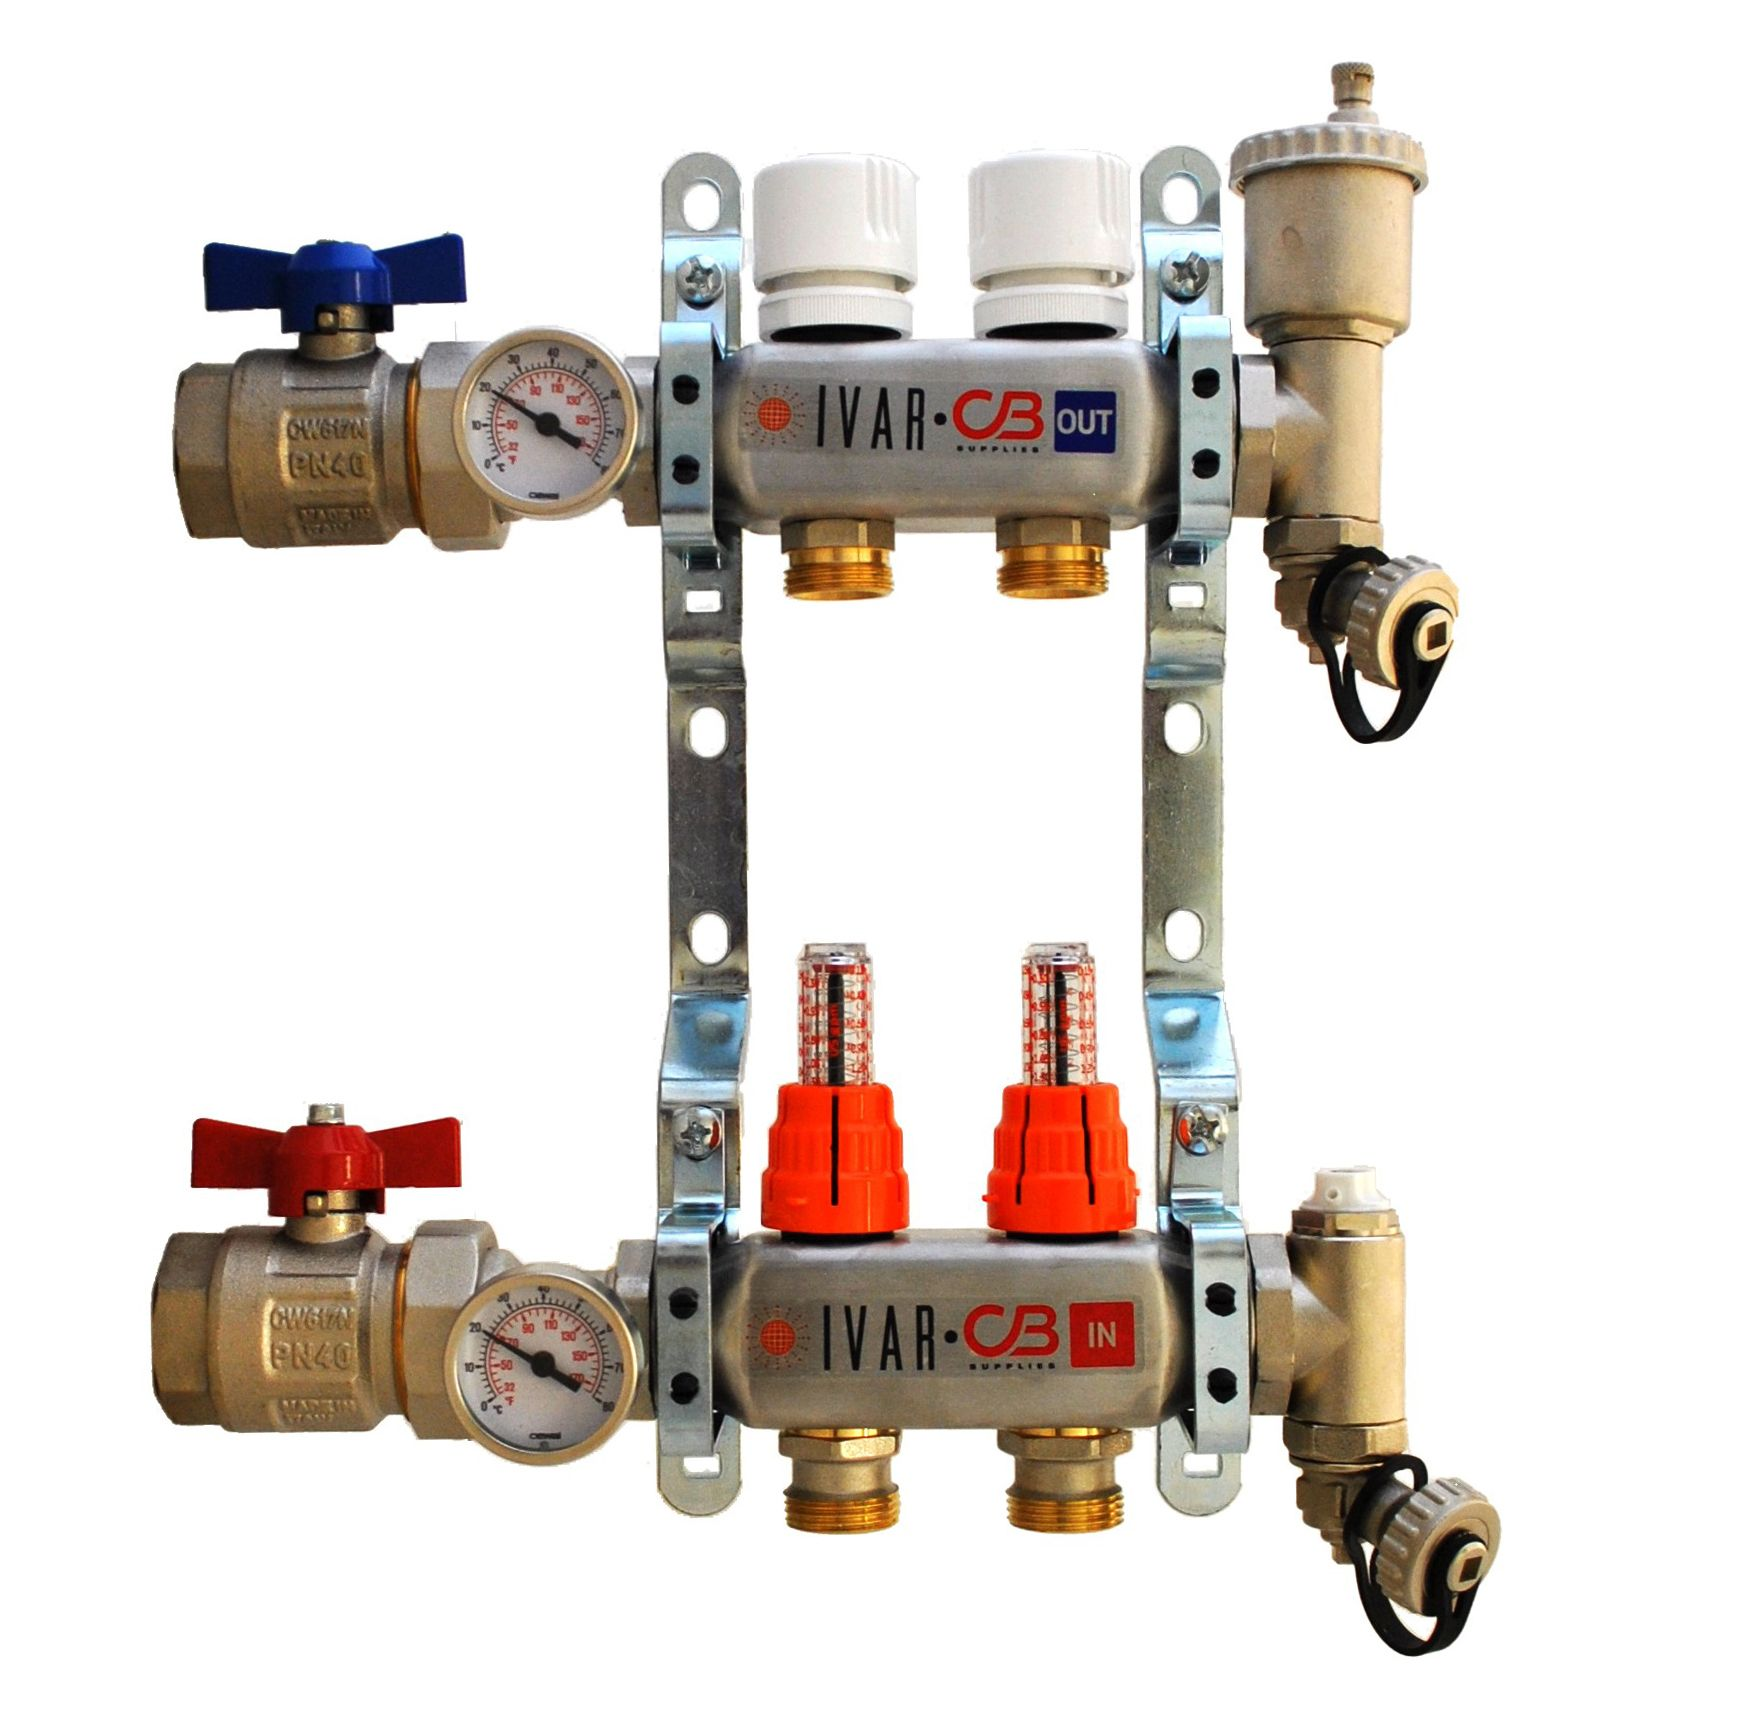 Ivar Stainless Steel Hydronic Manifold For Radiant Floor Heating Ports